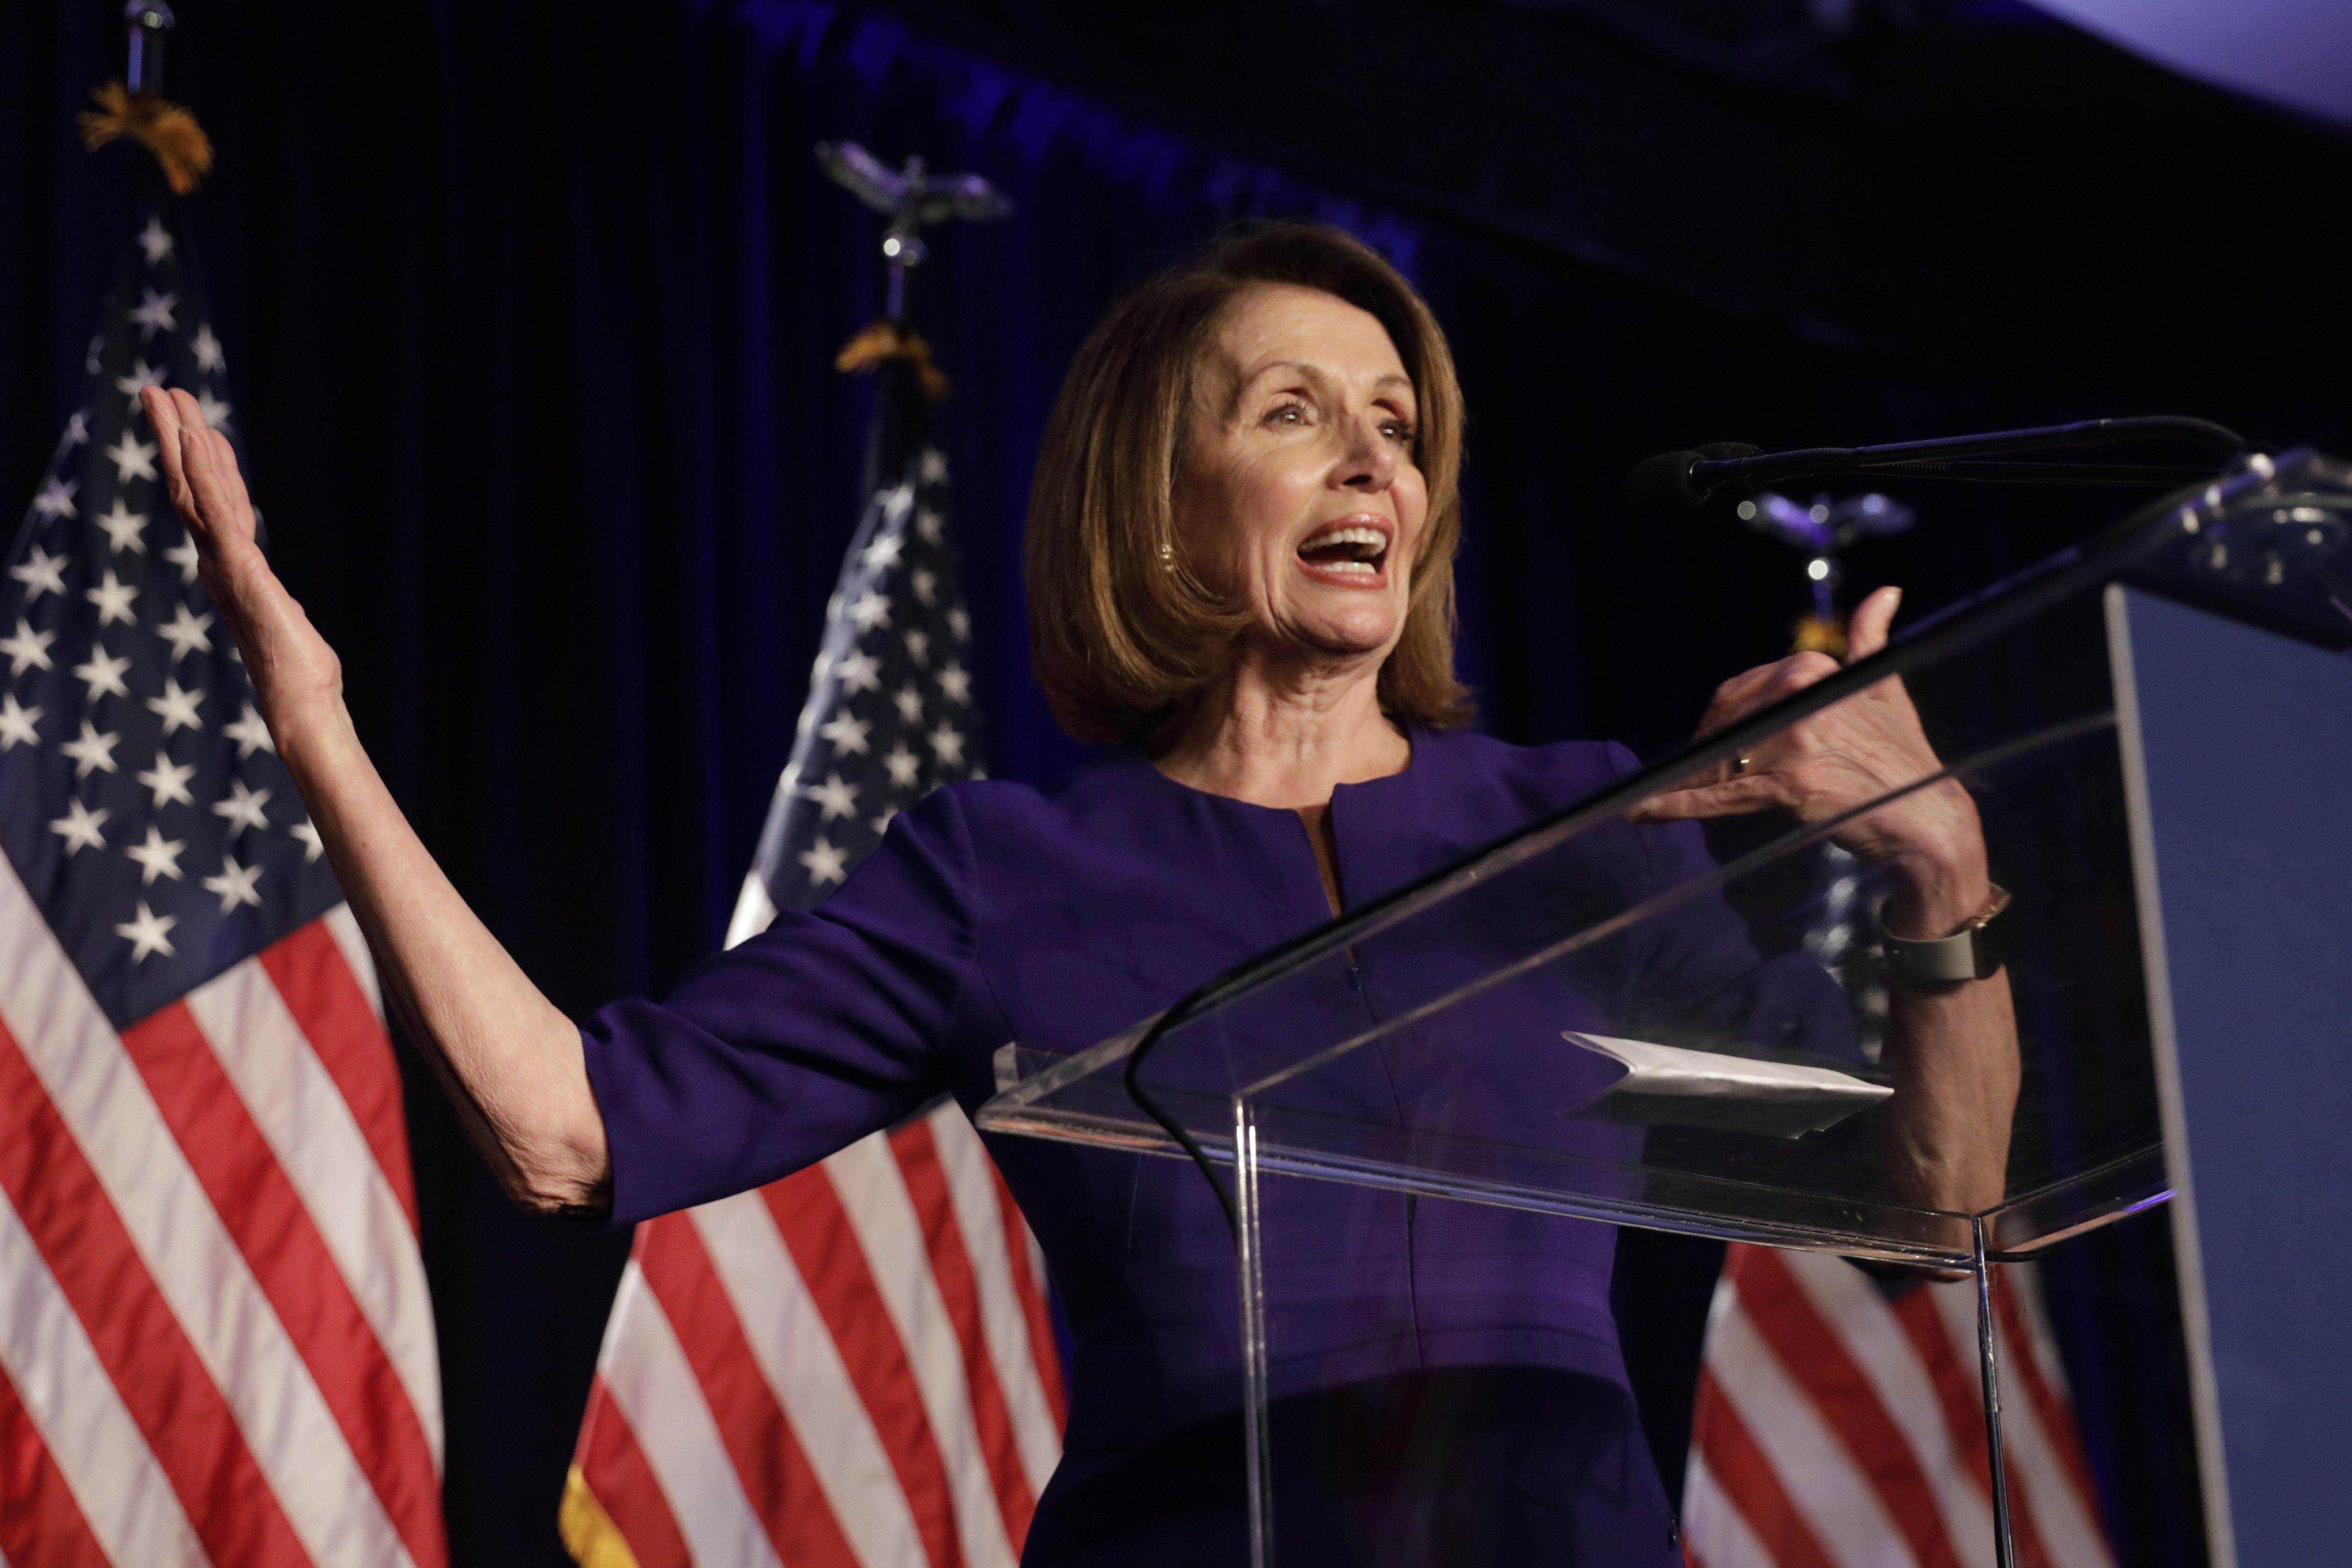 It's not clear if Nancy Pelosi will be speaker when Democrats take control of the House in